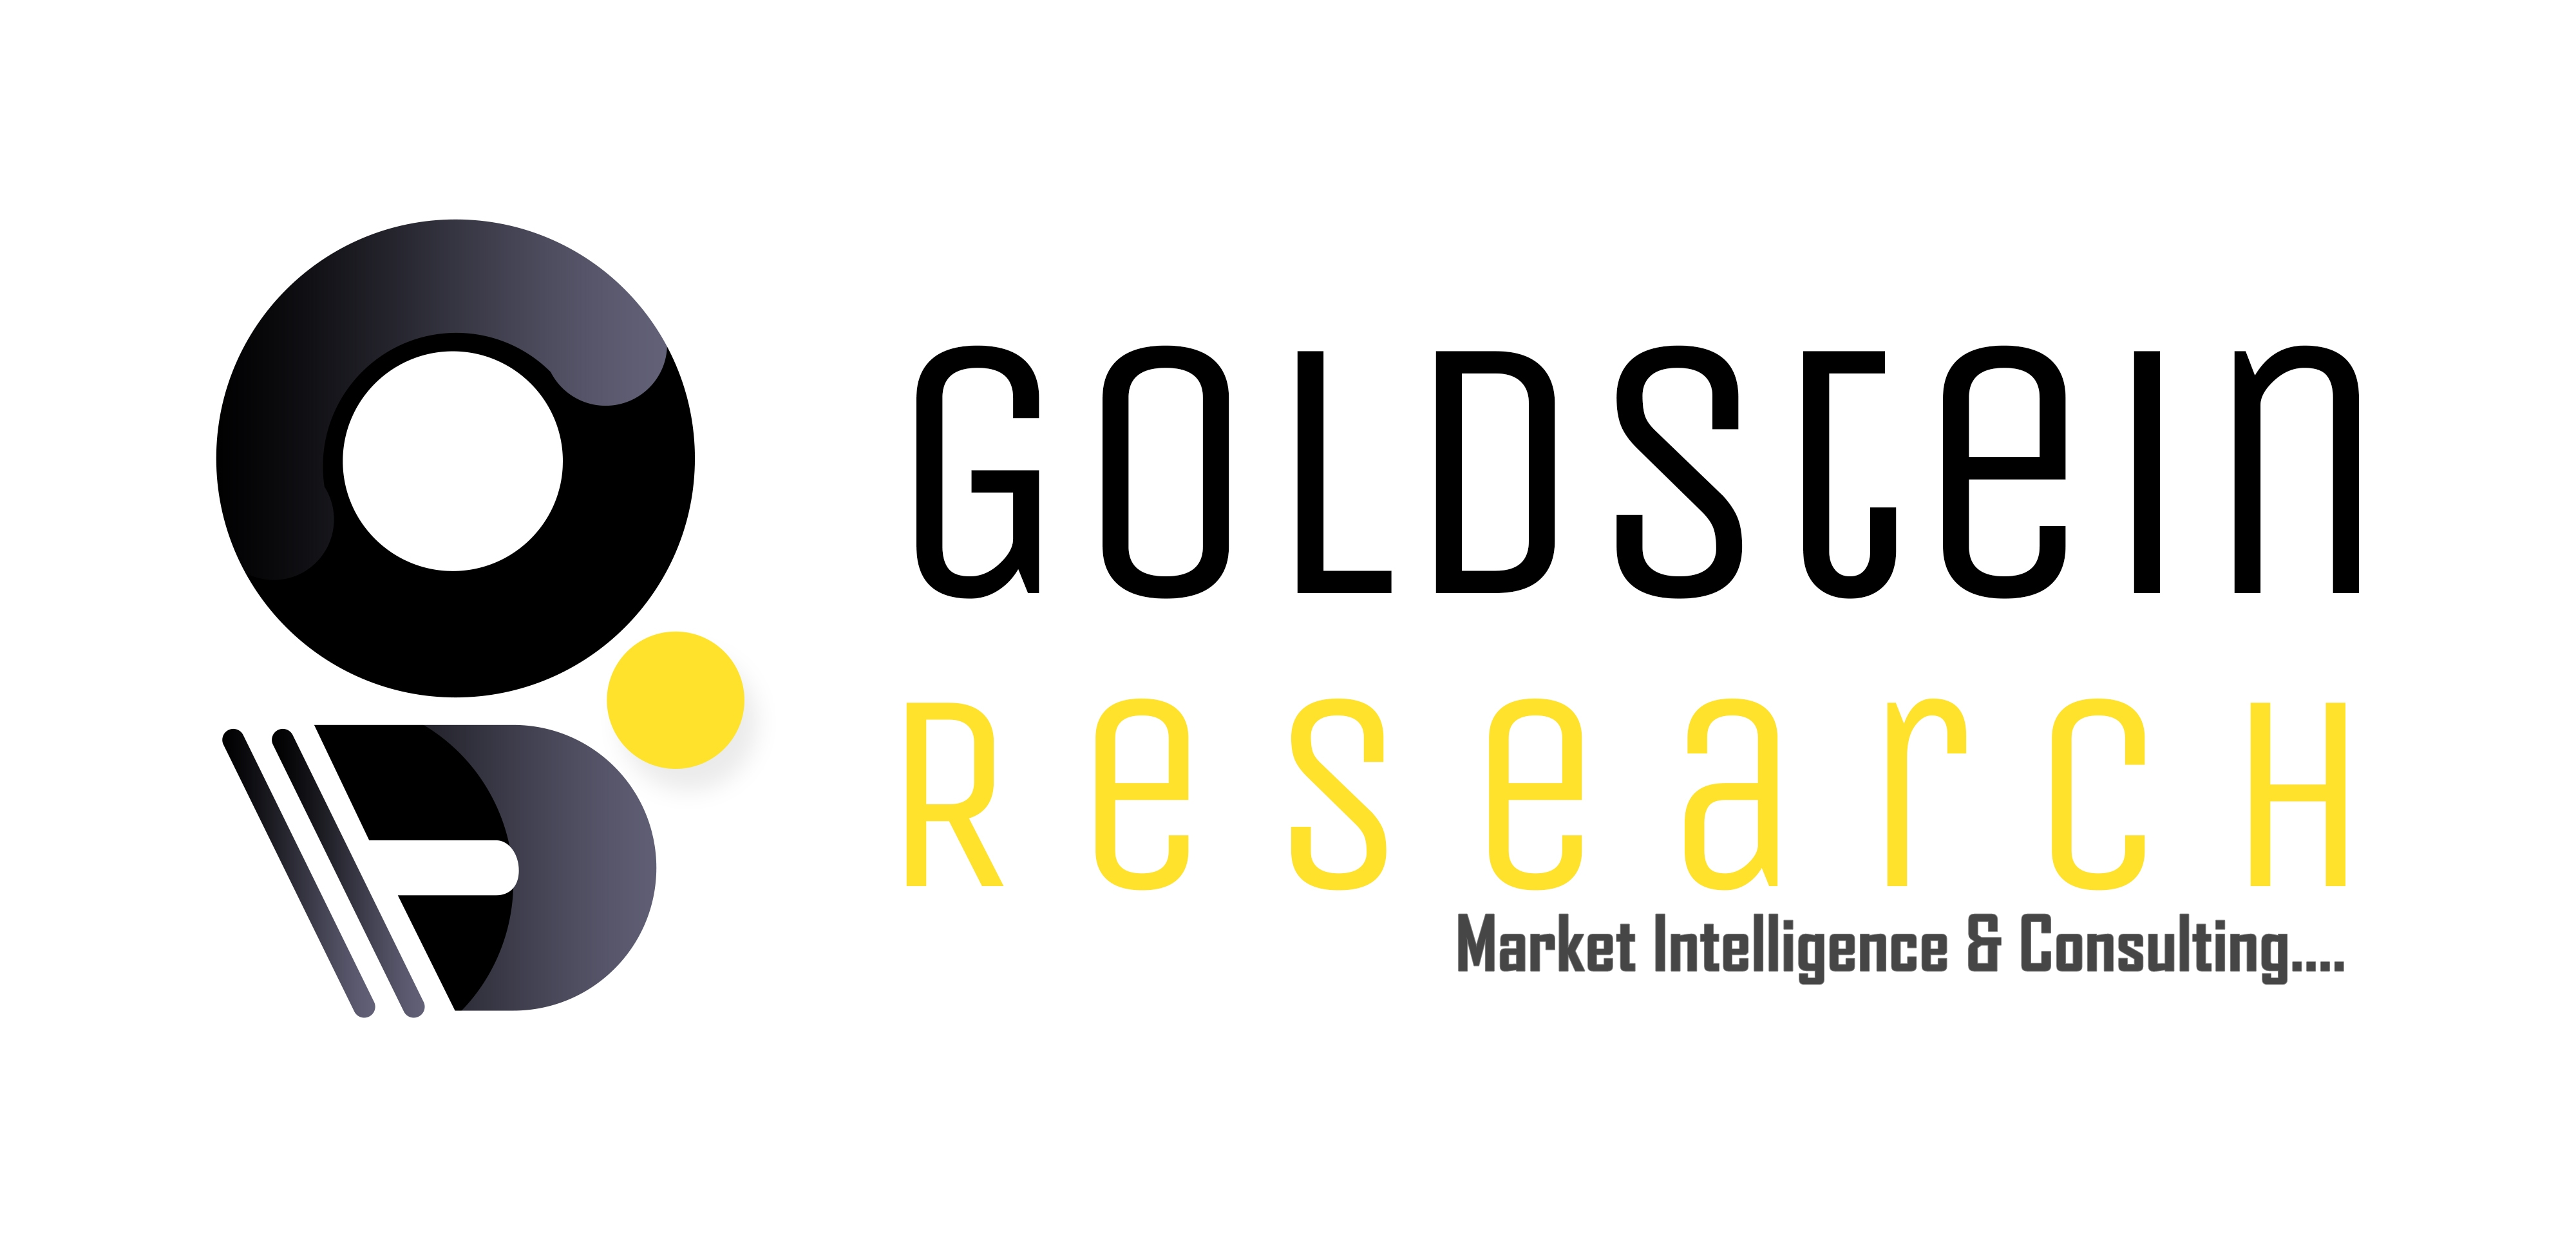 Solar Water Heater Market Size is set to Reach USD 5.1 billion by 2025 says Goldstein Research